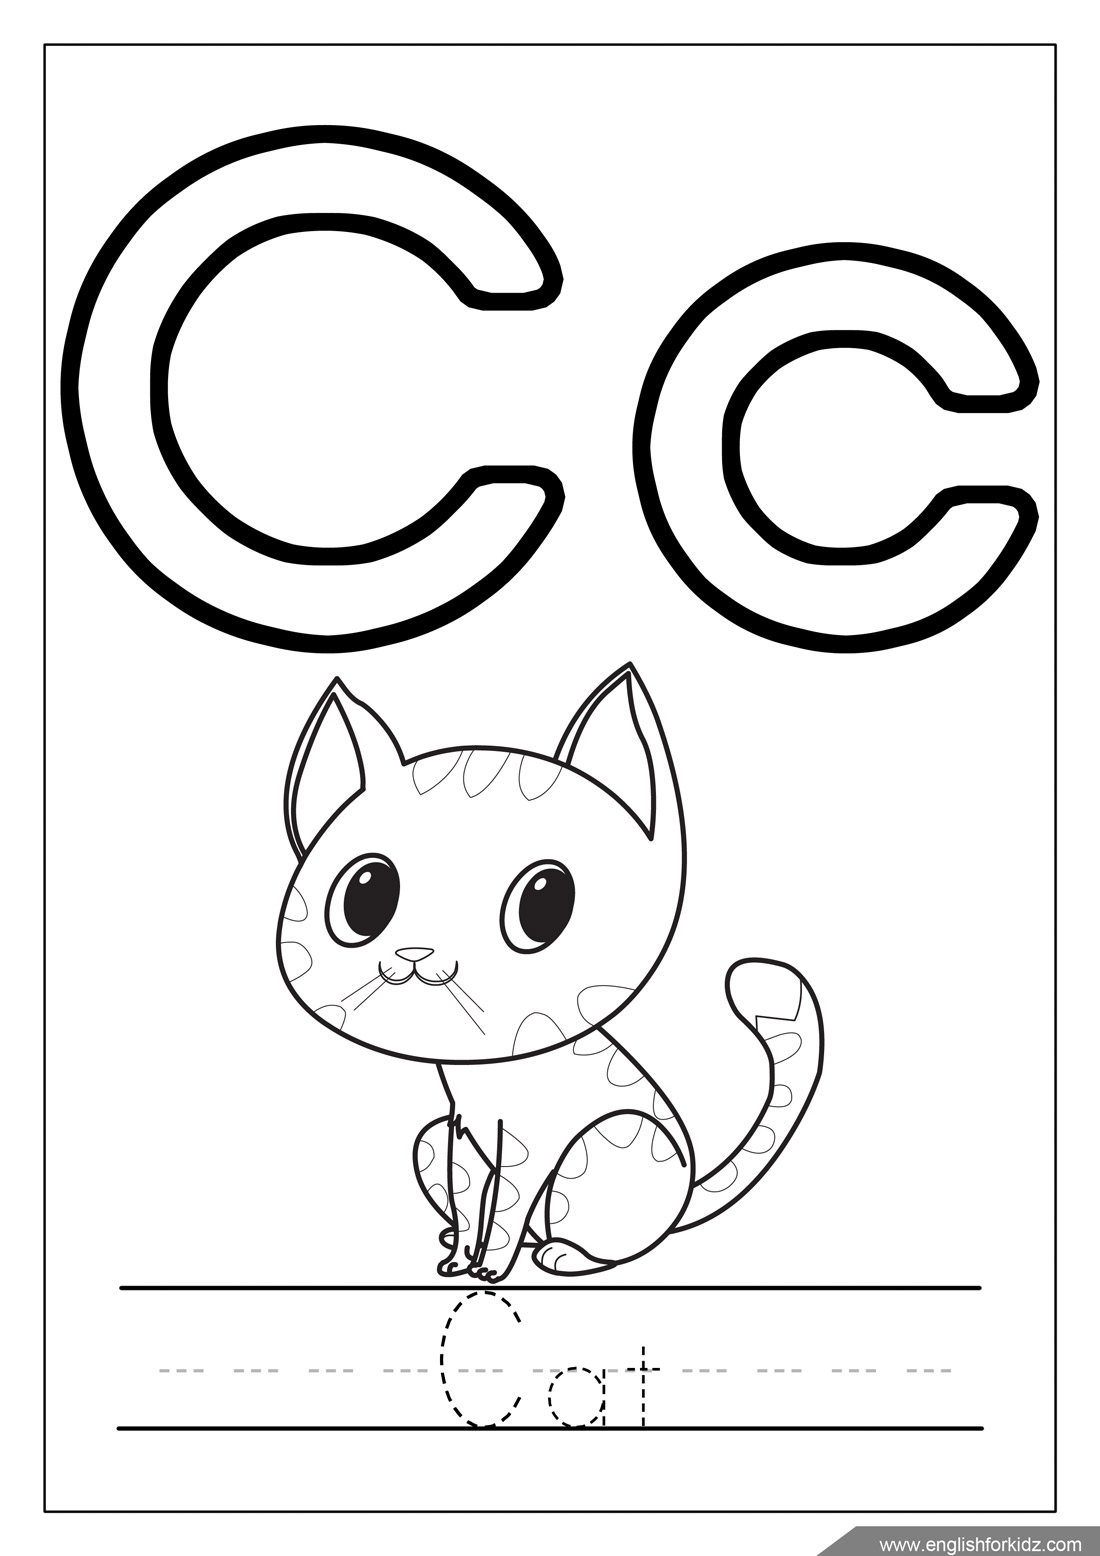 Printable alphabet coloring pages letters a j for C is for cat coloring page